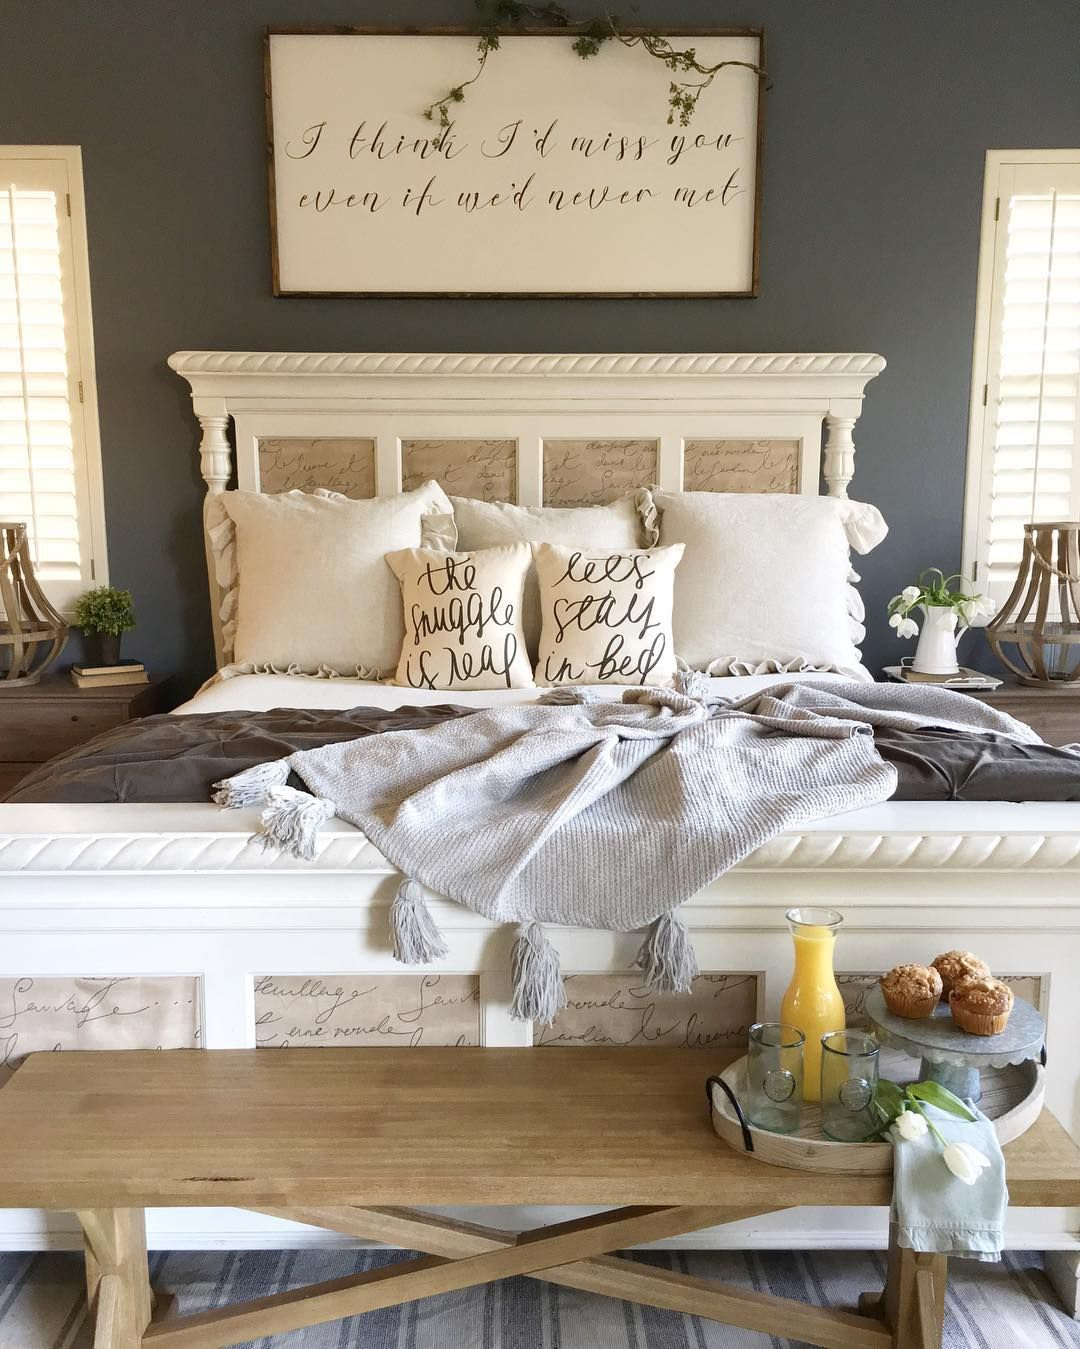 Paint My Bedroom Could Paint My Bed Leave Nightstands The Same Add Bench In A